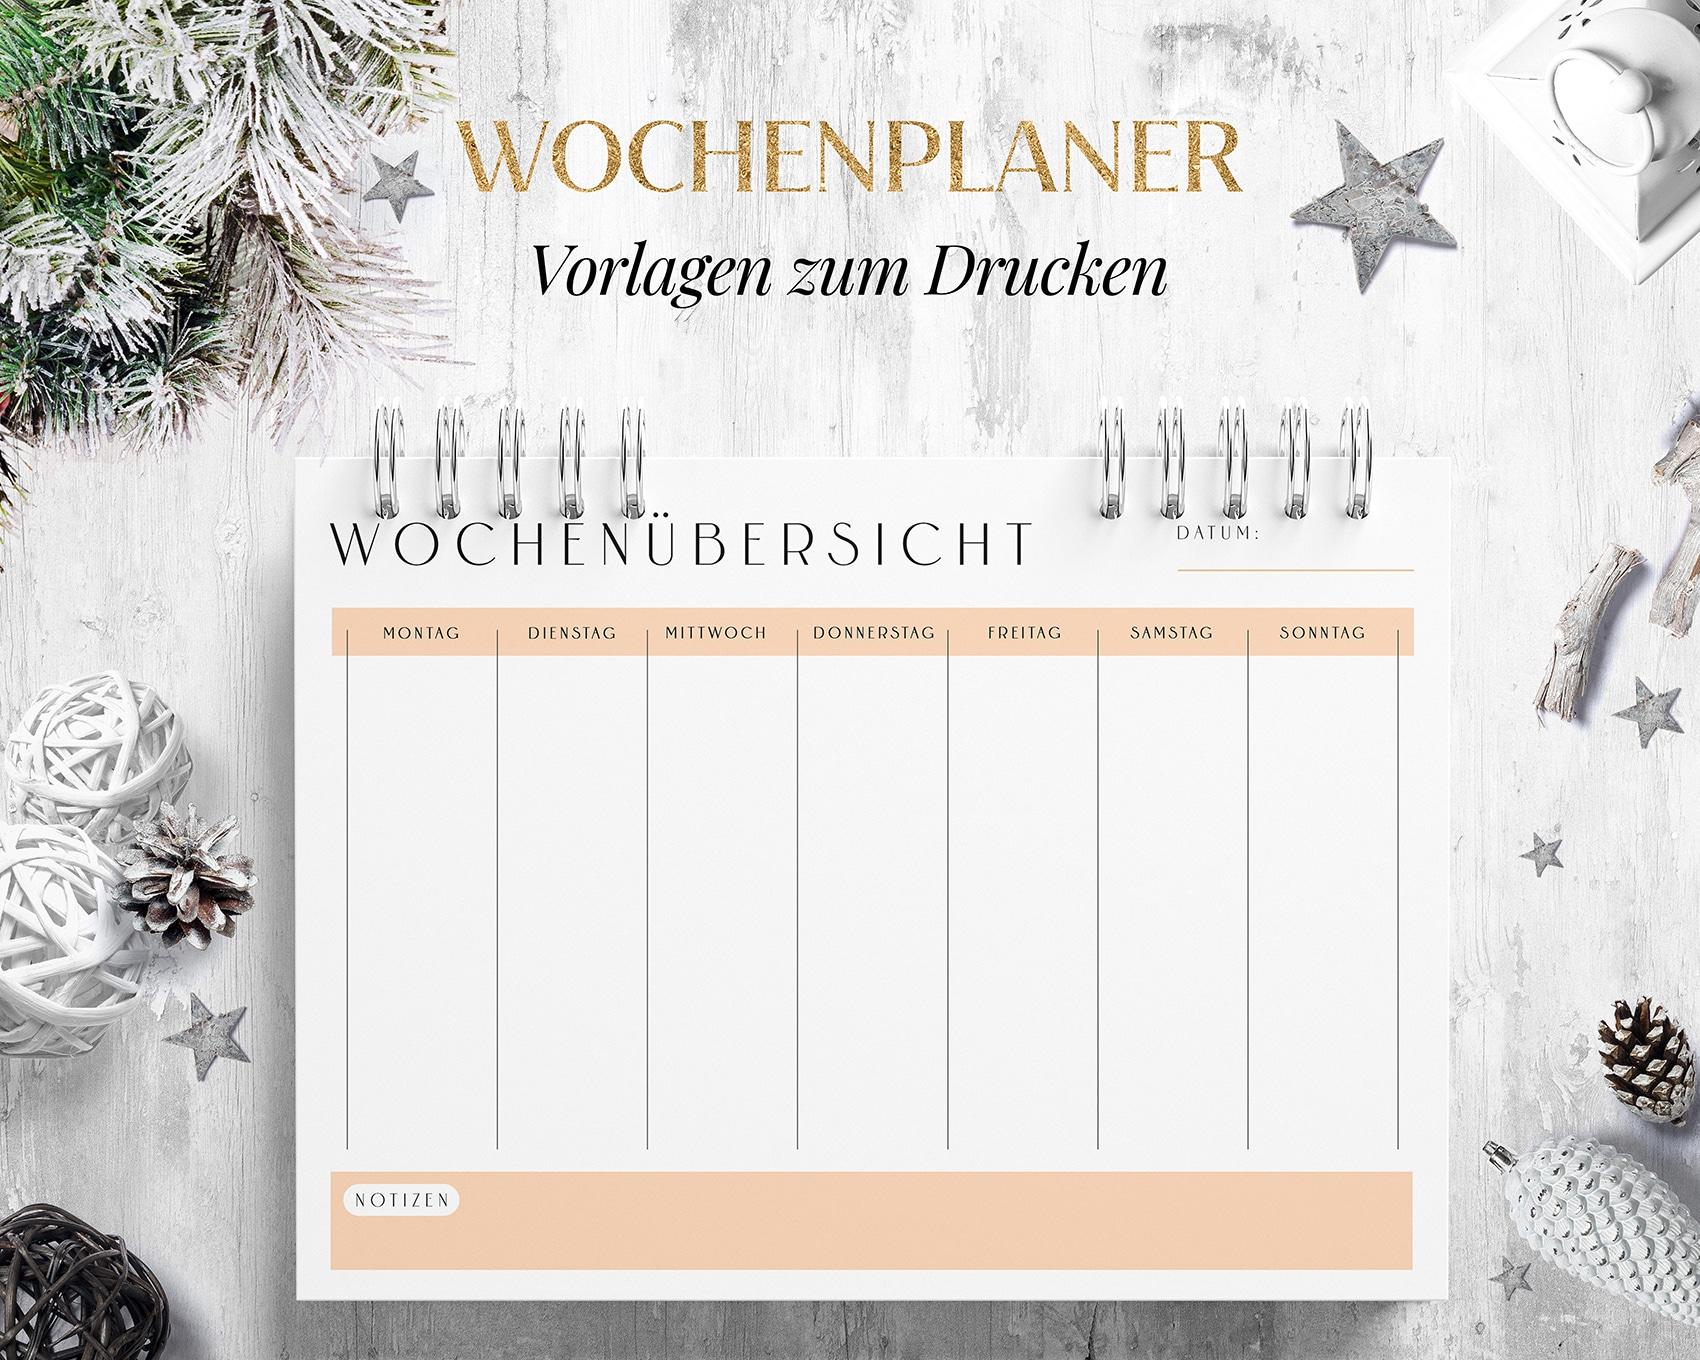 Wochenplan Vorlage Download Orange